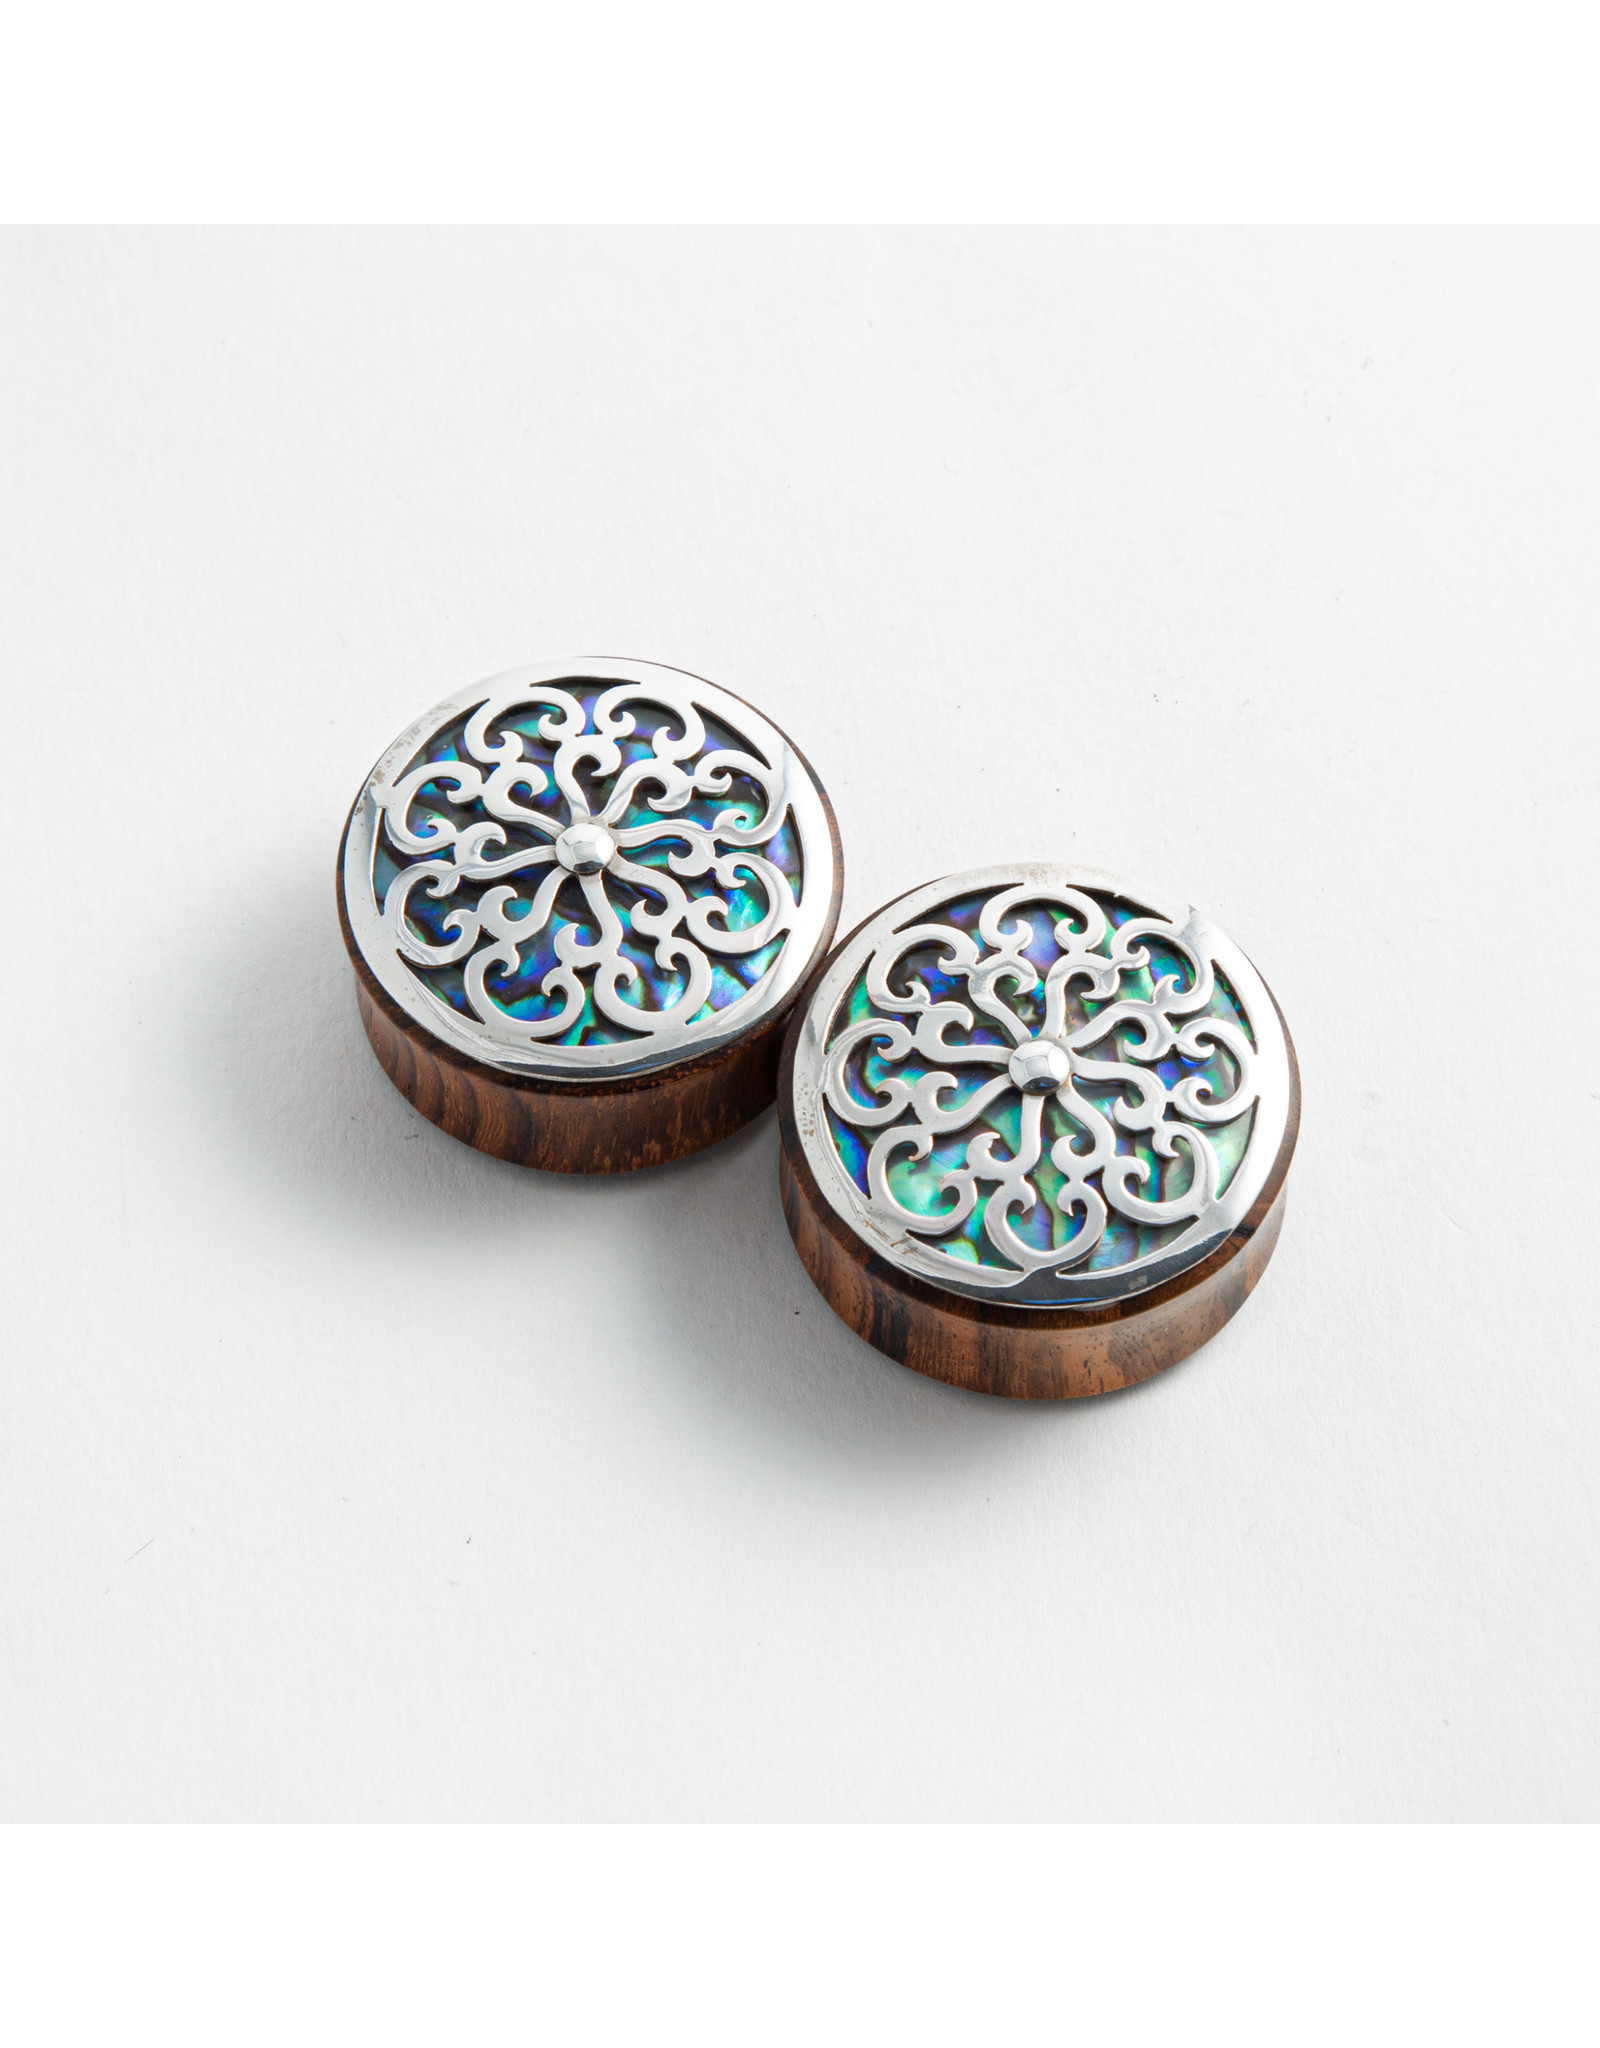 """Buddha Jewelry Organics Buddha Jewelry Organics """"Idol"""" arang wood double flared plug with silver and abalone inlay"""